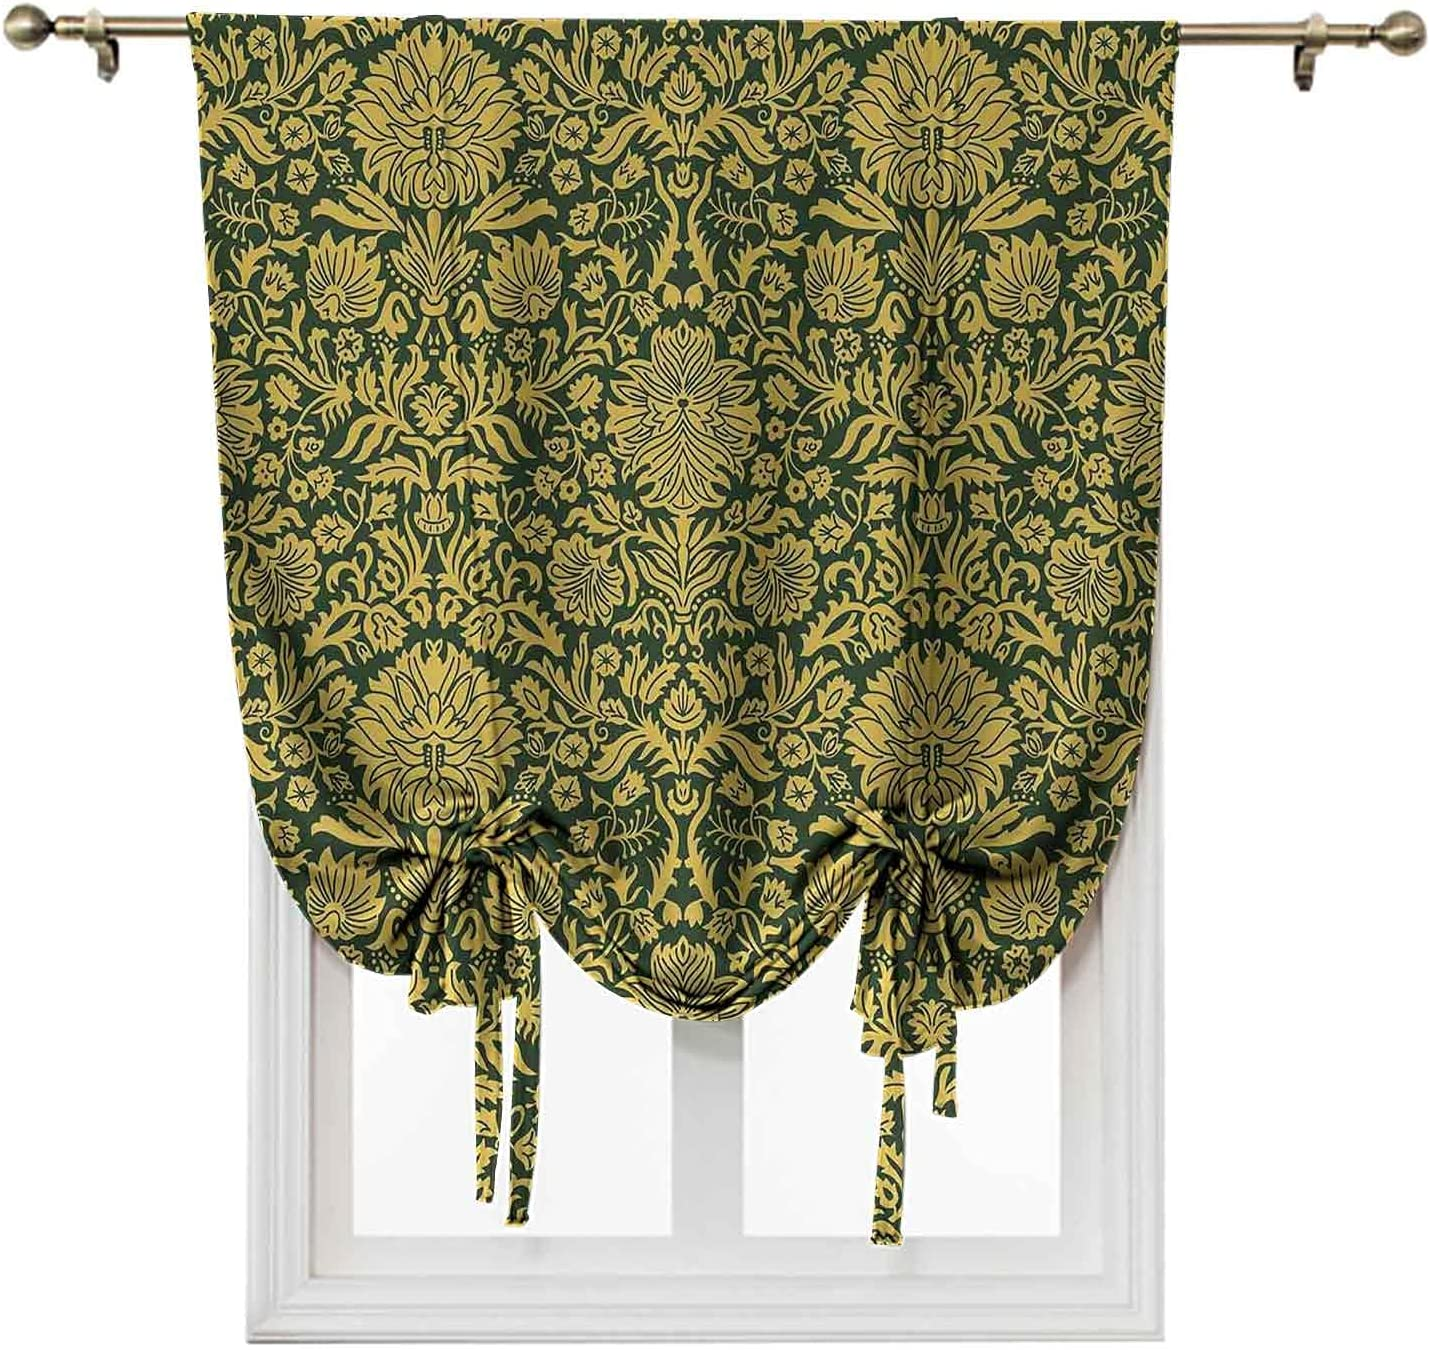 Patio Door Curtains Challenge the lowest price 42